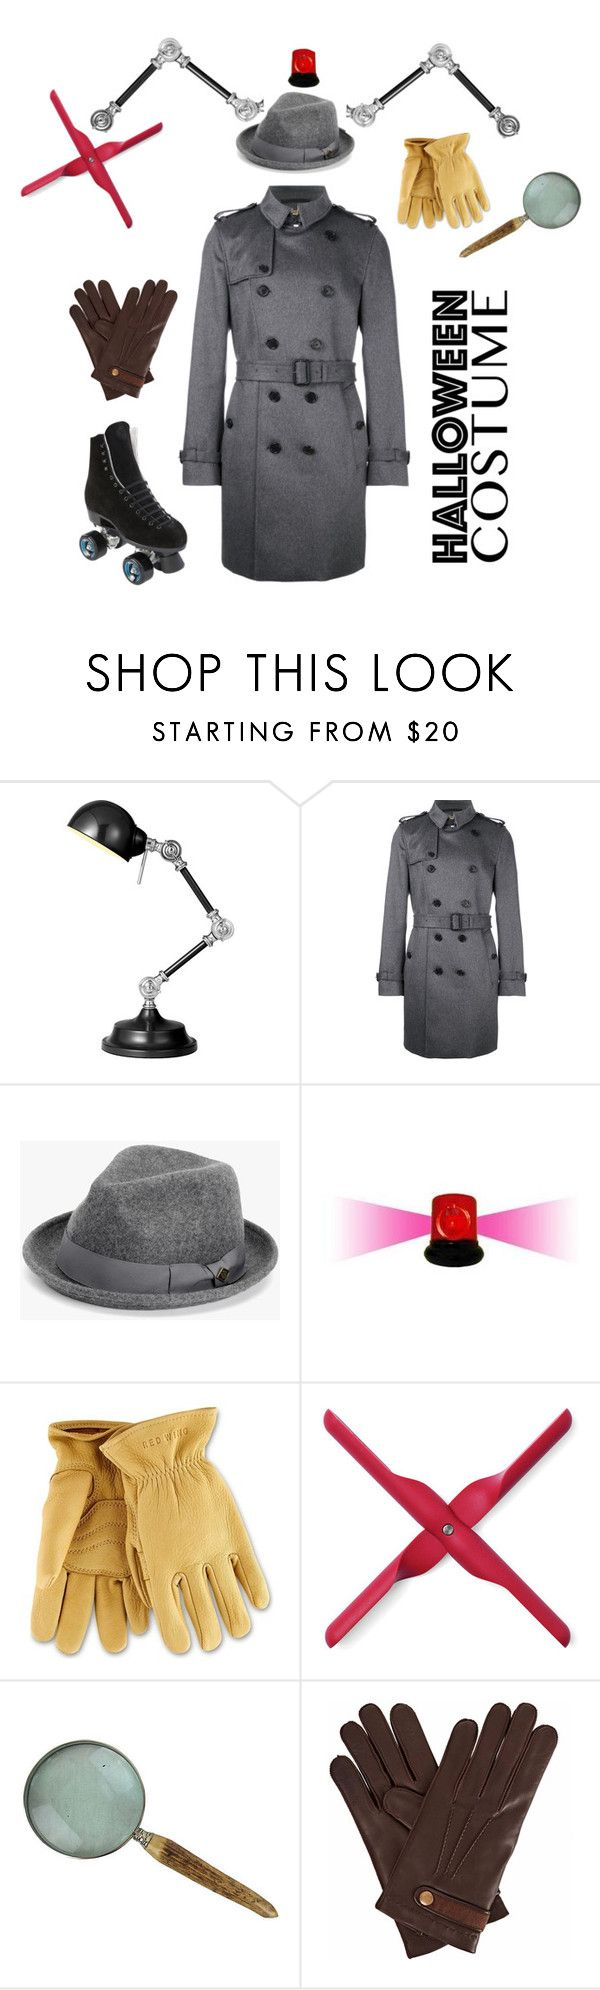 """Costume: TV: Inspector Gadget"" by rebeccalange ❤ liked on Polyvore featuring Burberry, 7 For All Mankind, POLICE, Red Wing, Menu, Gizelle Renee, Riedell, halloweencostume and DIYHalloween"